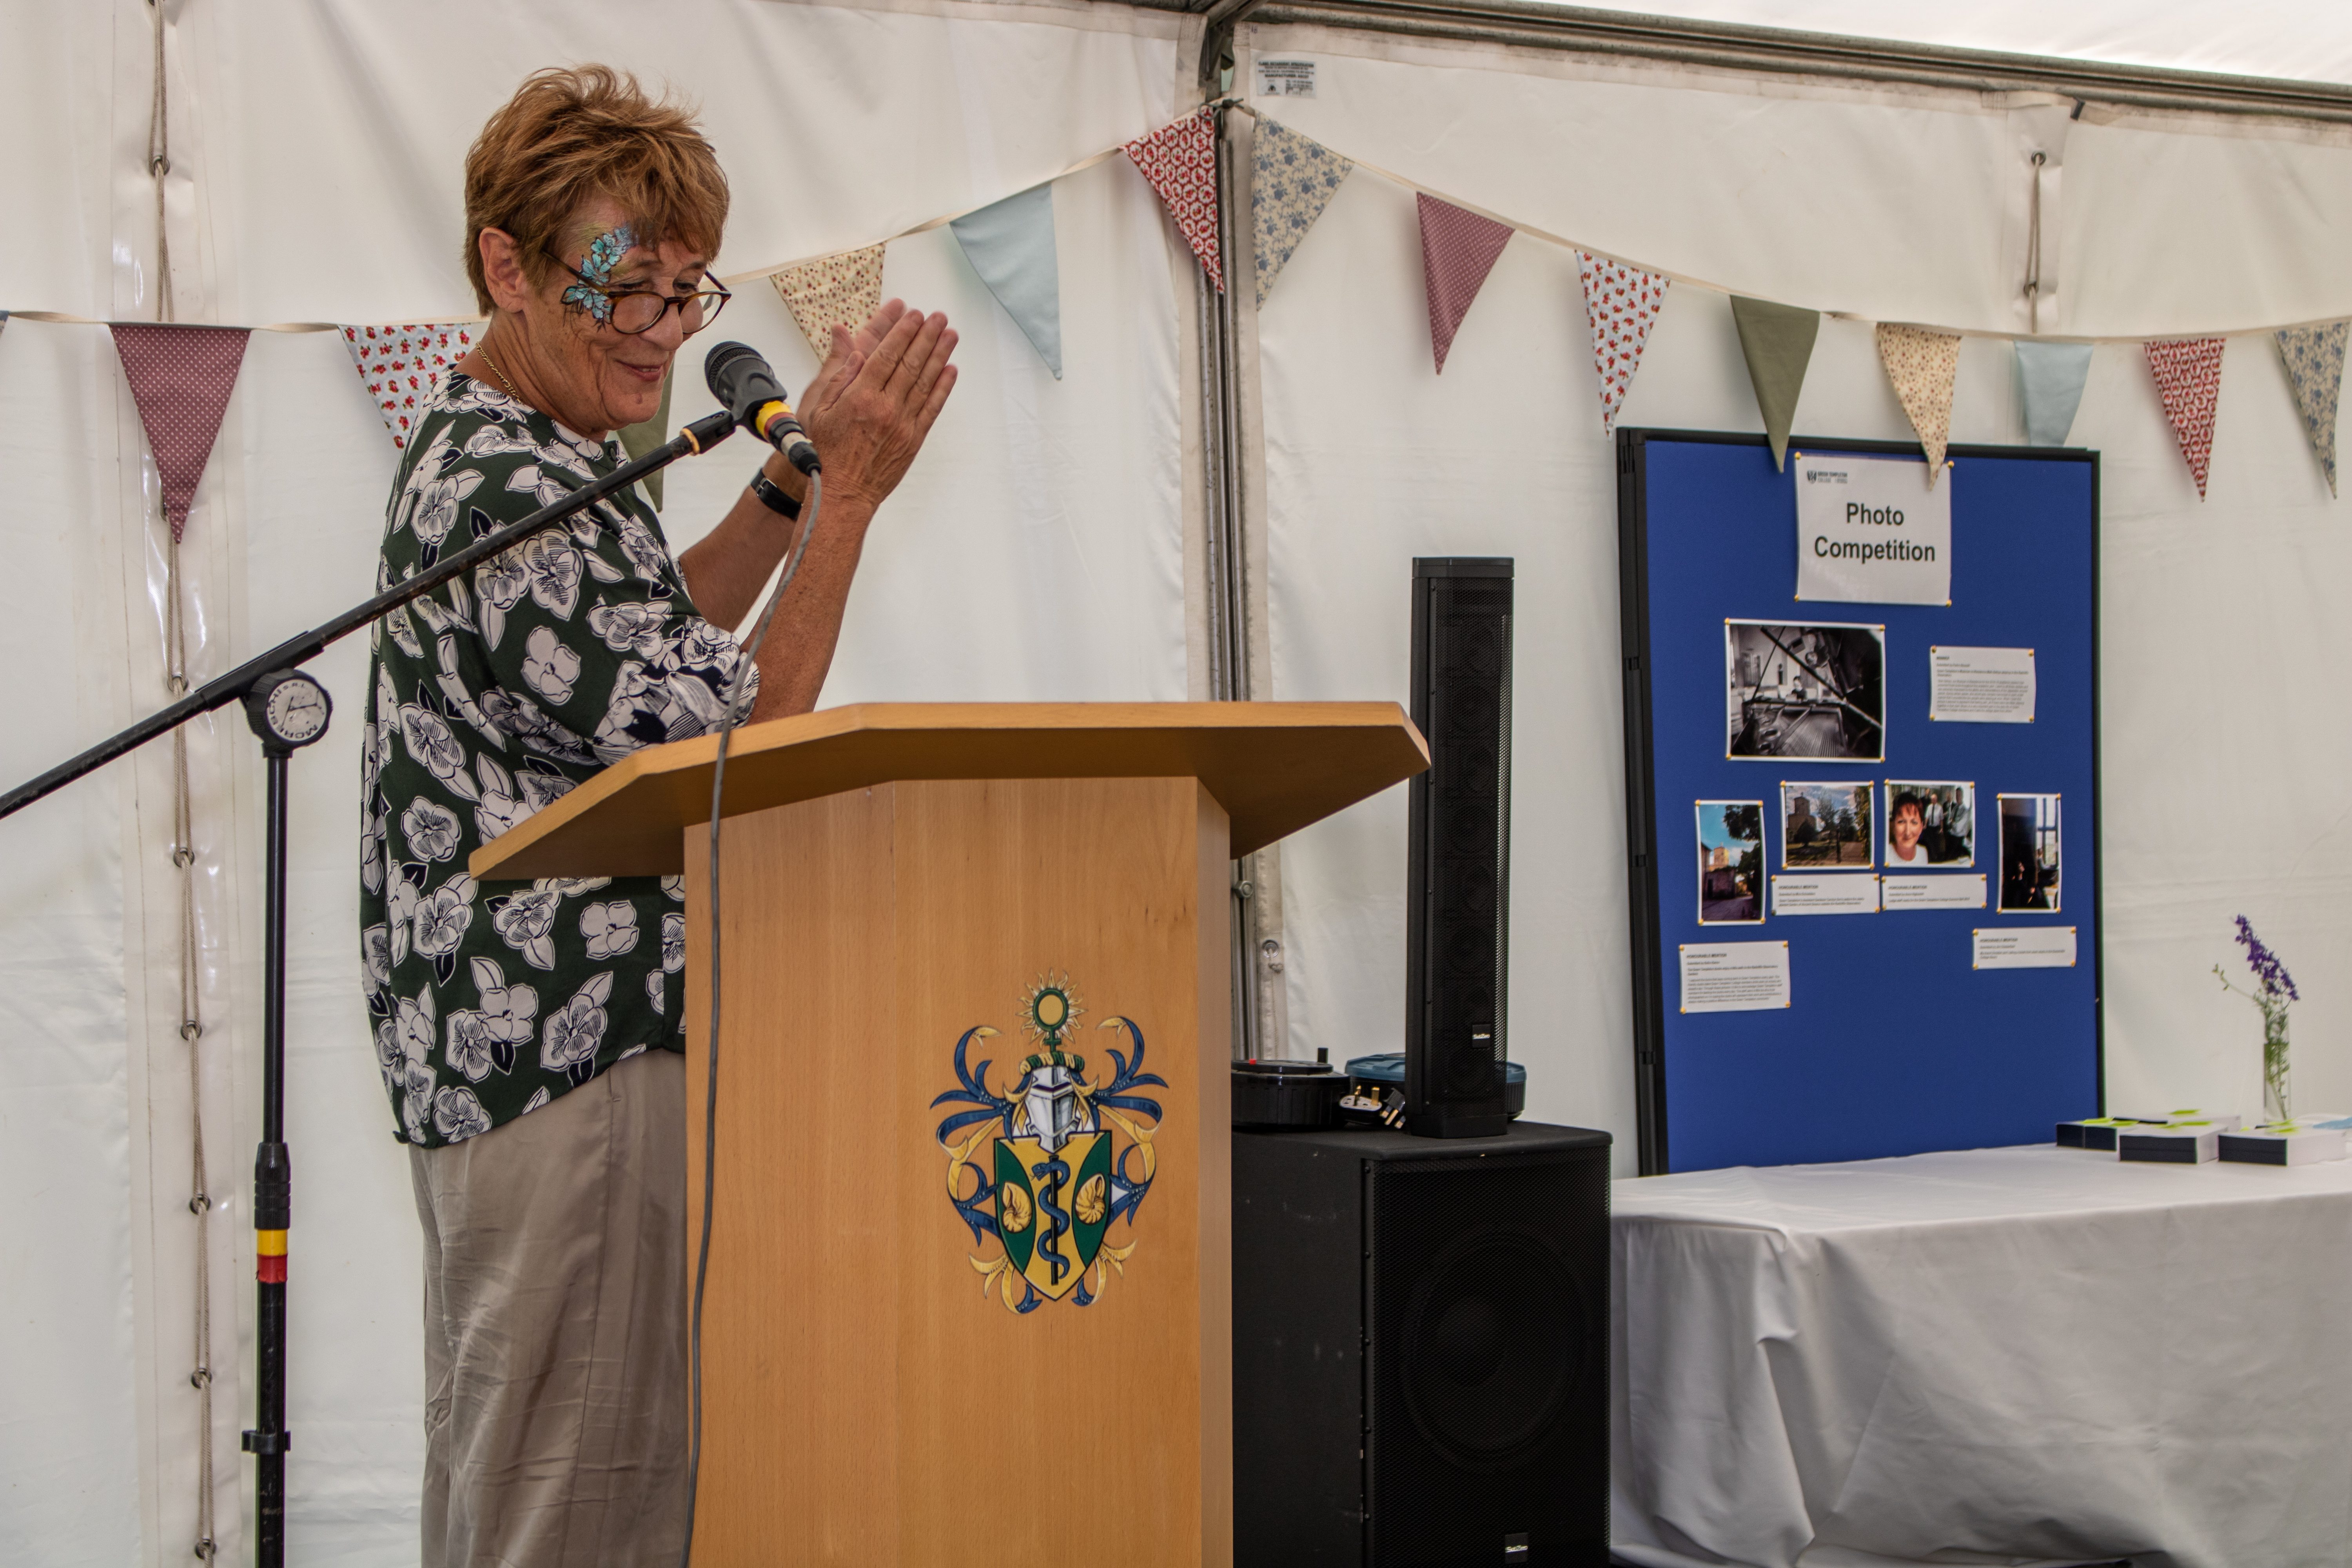 Principal Denise Lievesley announcing the winner of the 2019 Photography Competition at the Green Templeton annual garden party on 29 June 2019